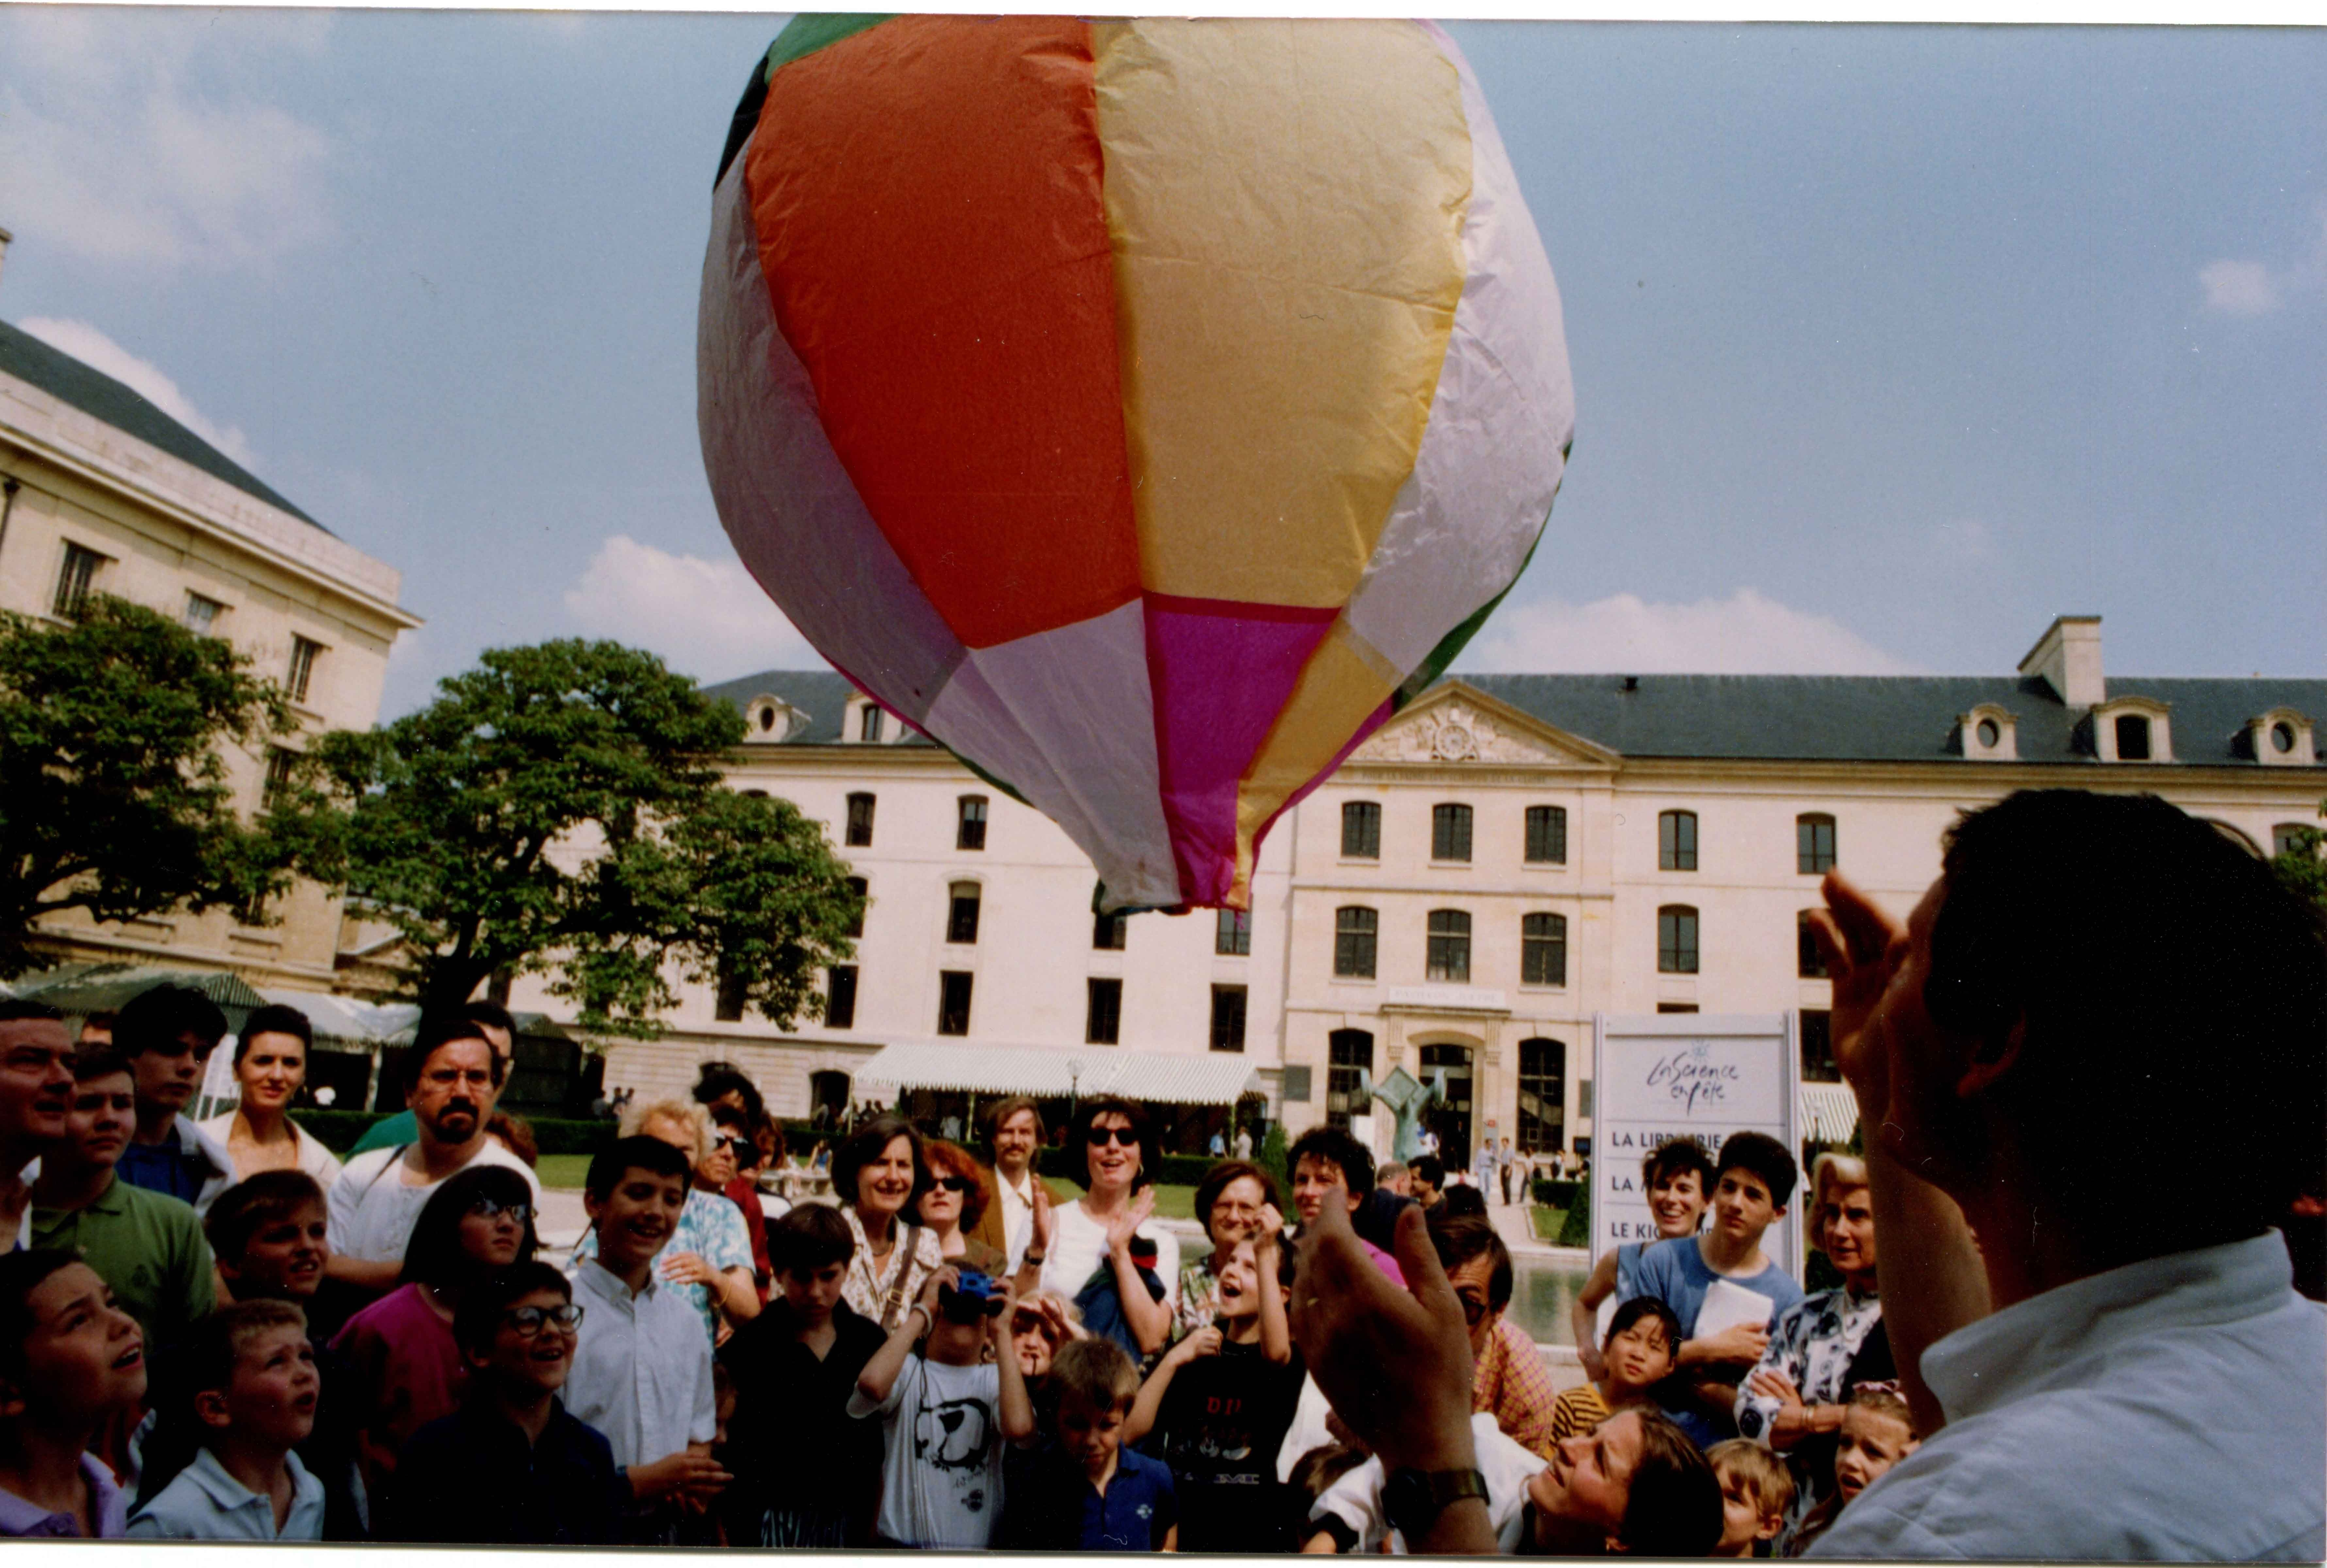 La fête de la science, 1992